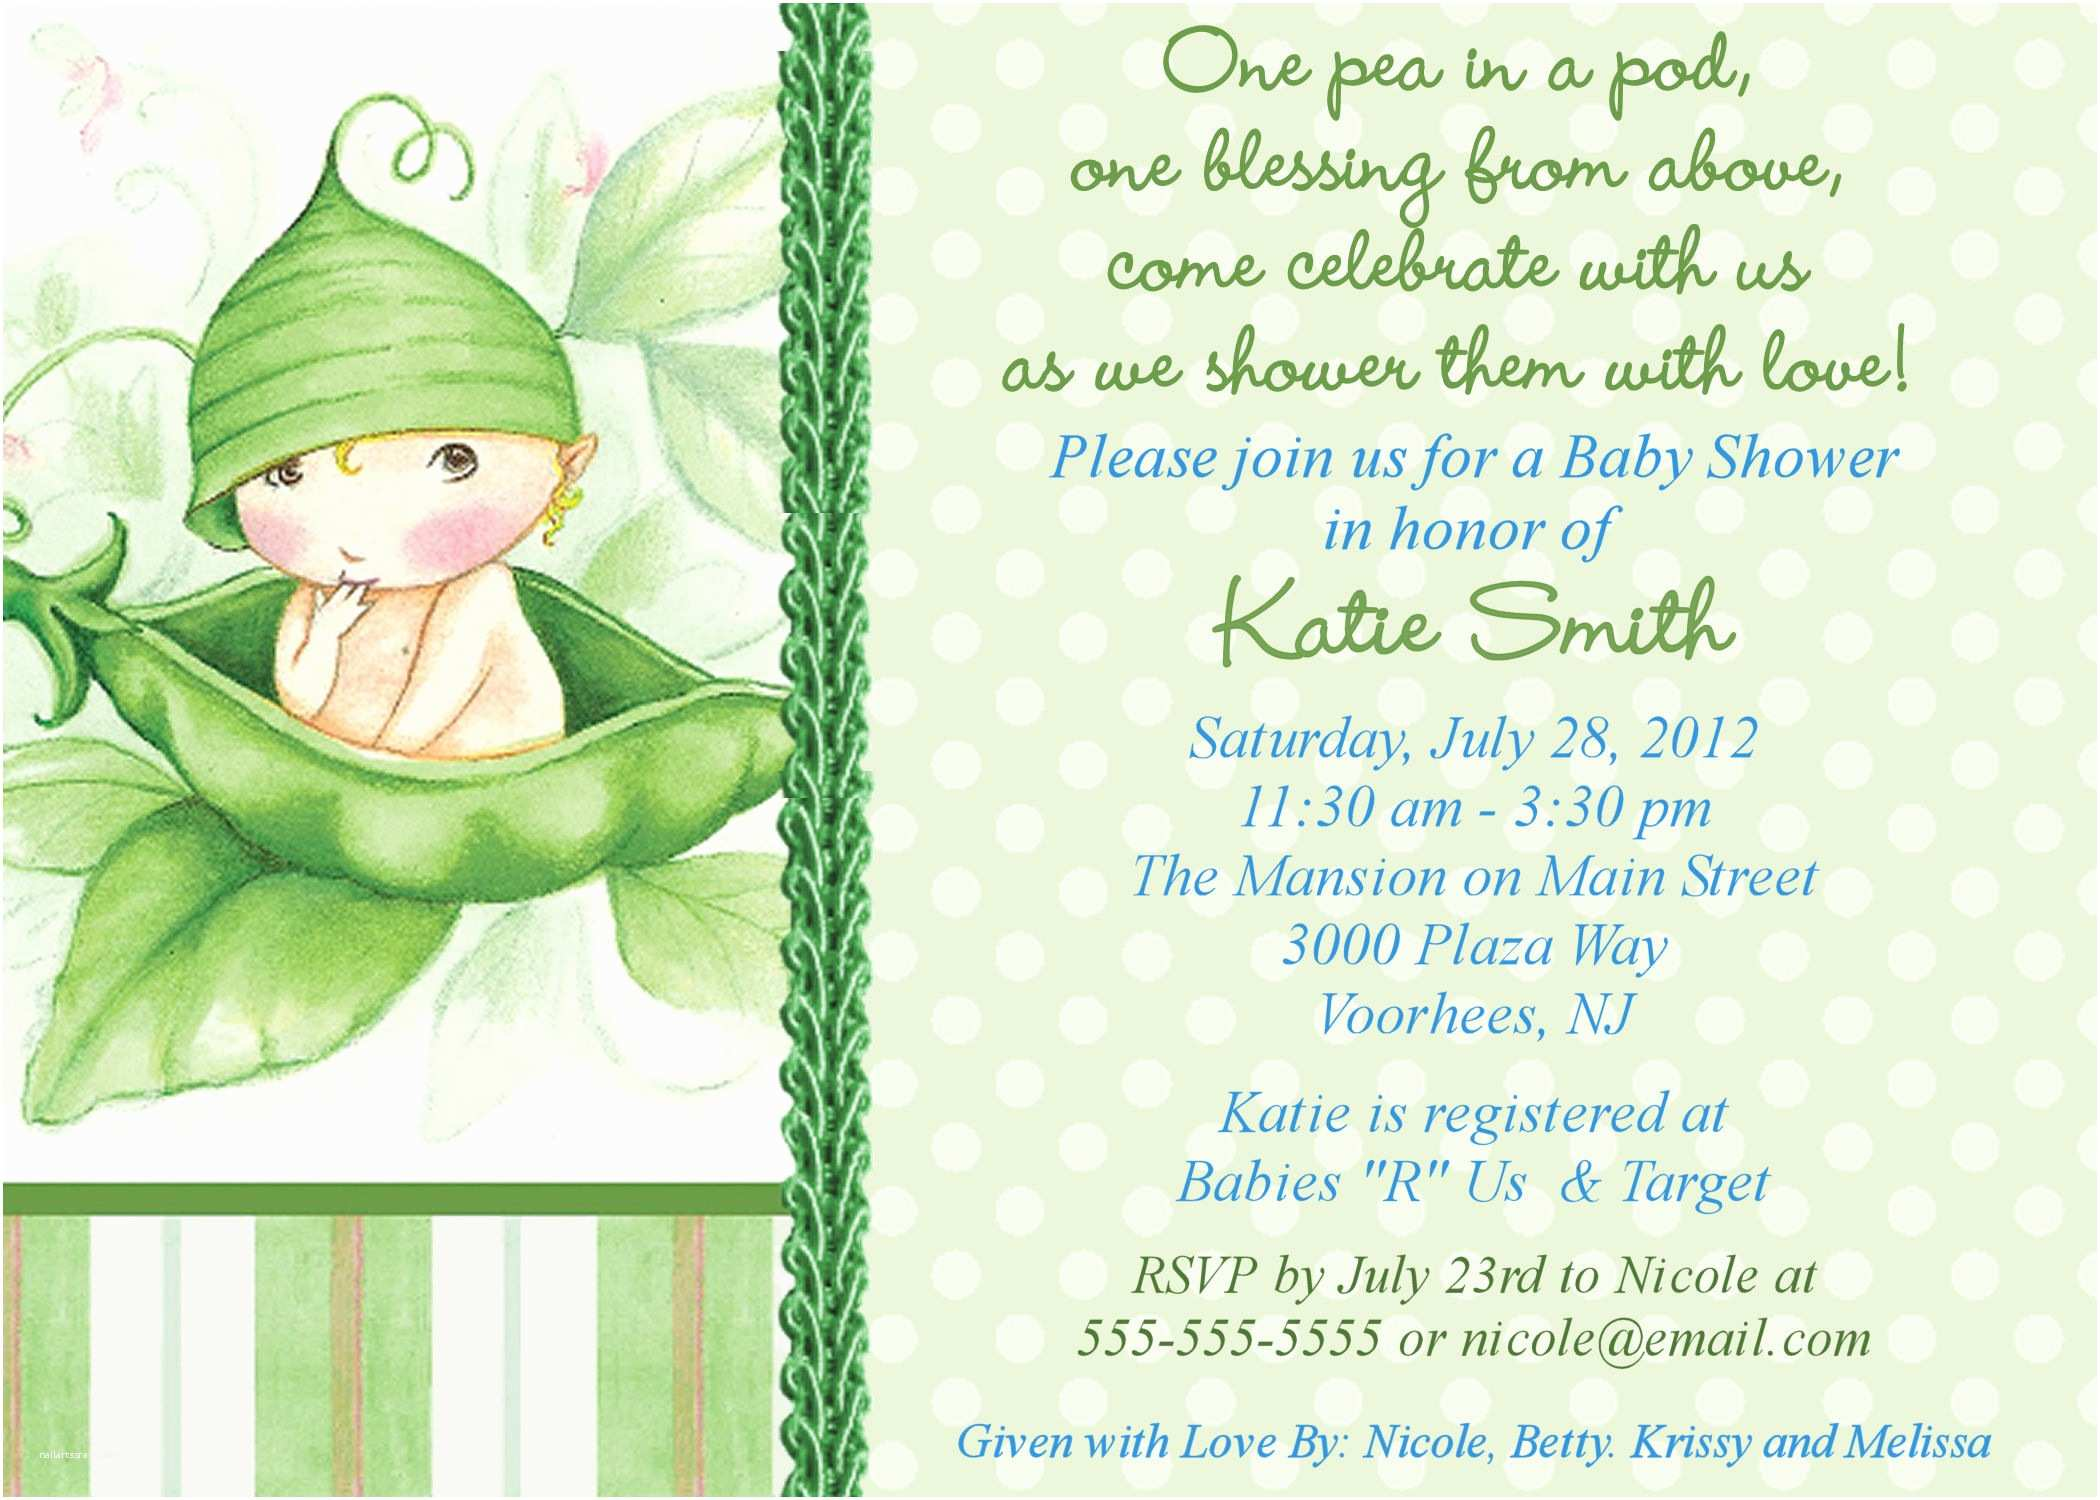 Free Baby Shower Invitations Templates Twin Baby Shower themes Ideas Pea In the Pod